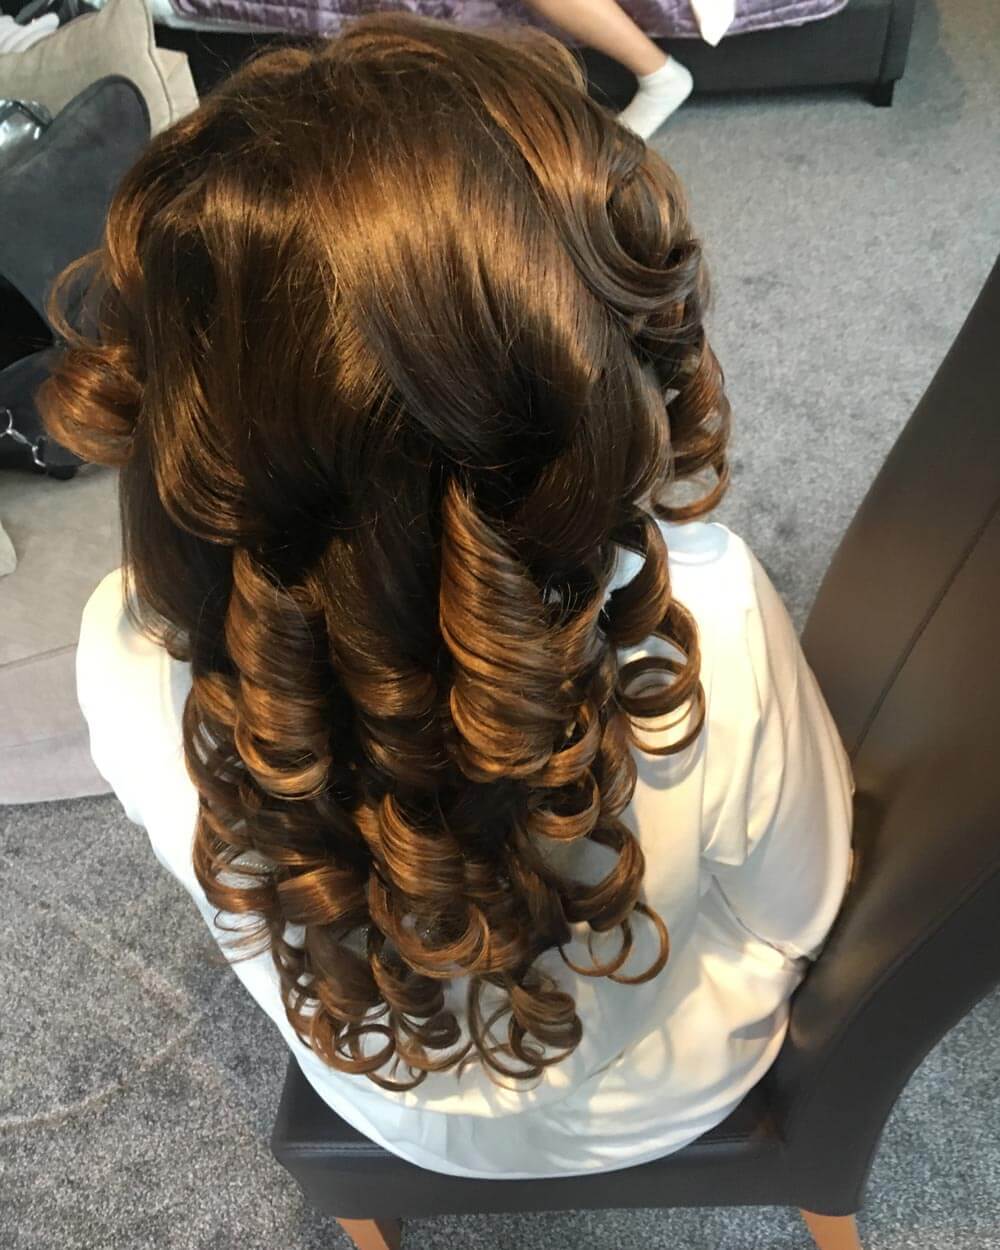 Bride's Hair – During